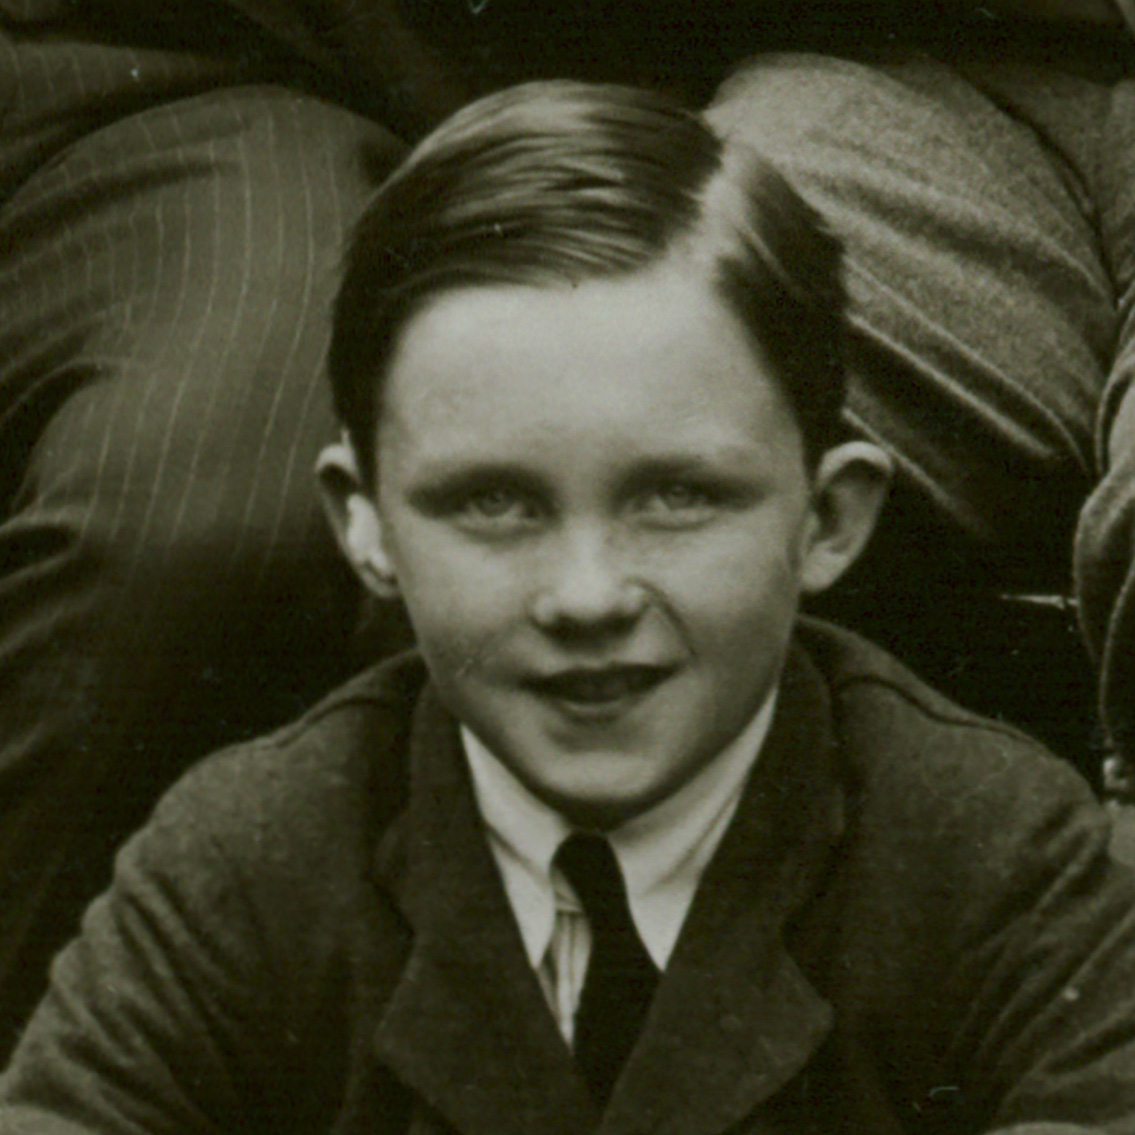 1945_03_22_james_michael_fitzgibbon_cropped_1923_gordon_house.jpg